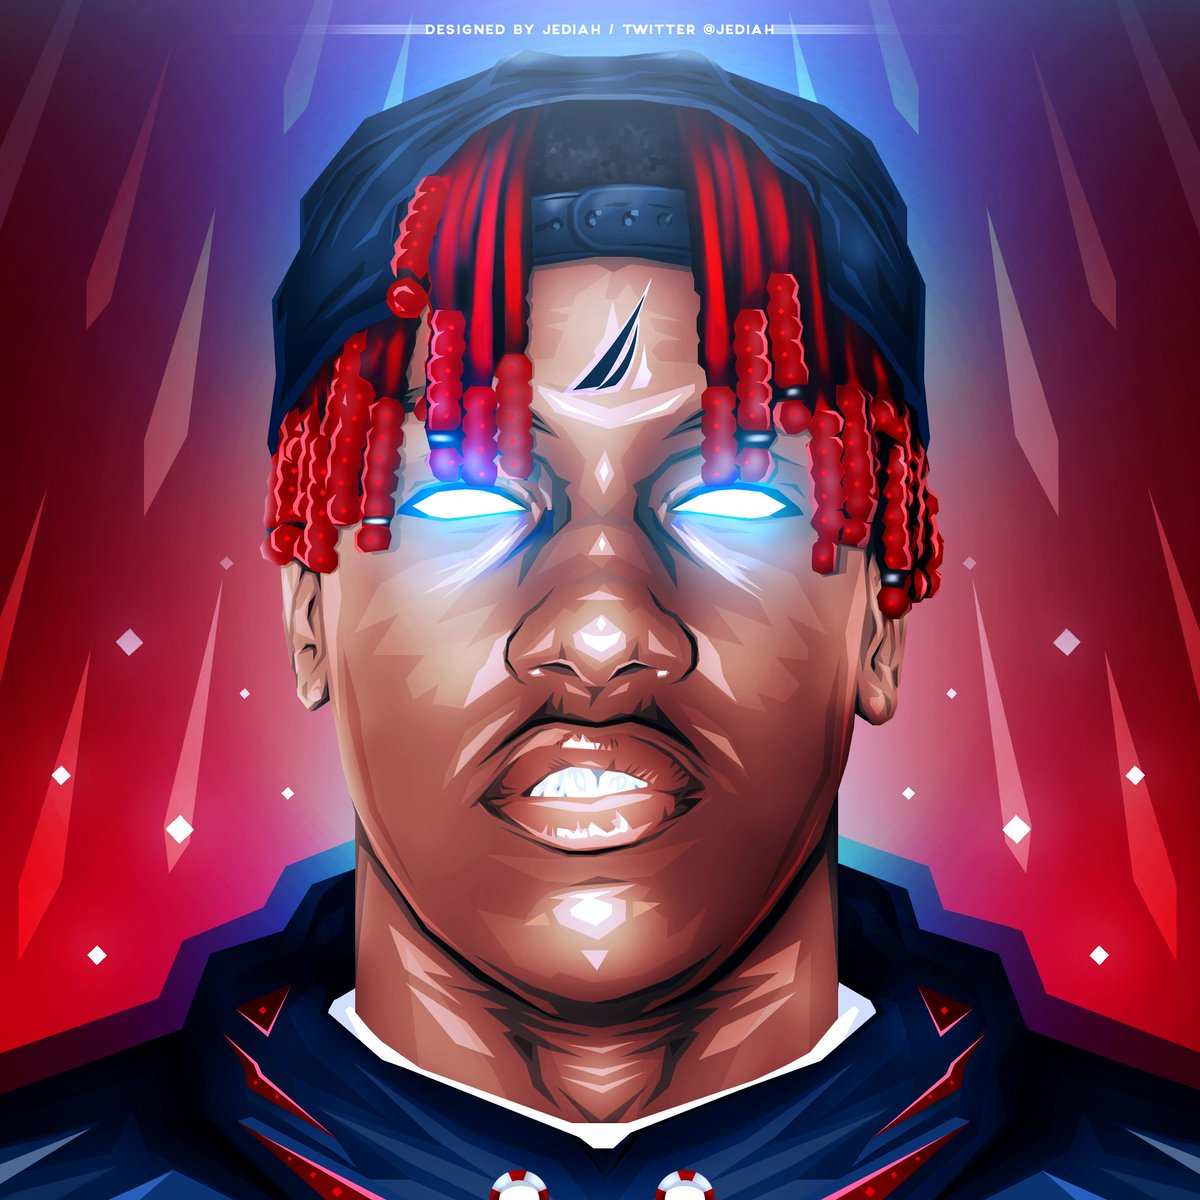 King Jediah 愛 On Twitter Lil Yachty Artwork Designed By Me Rts